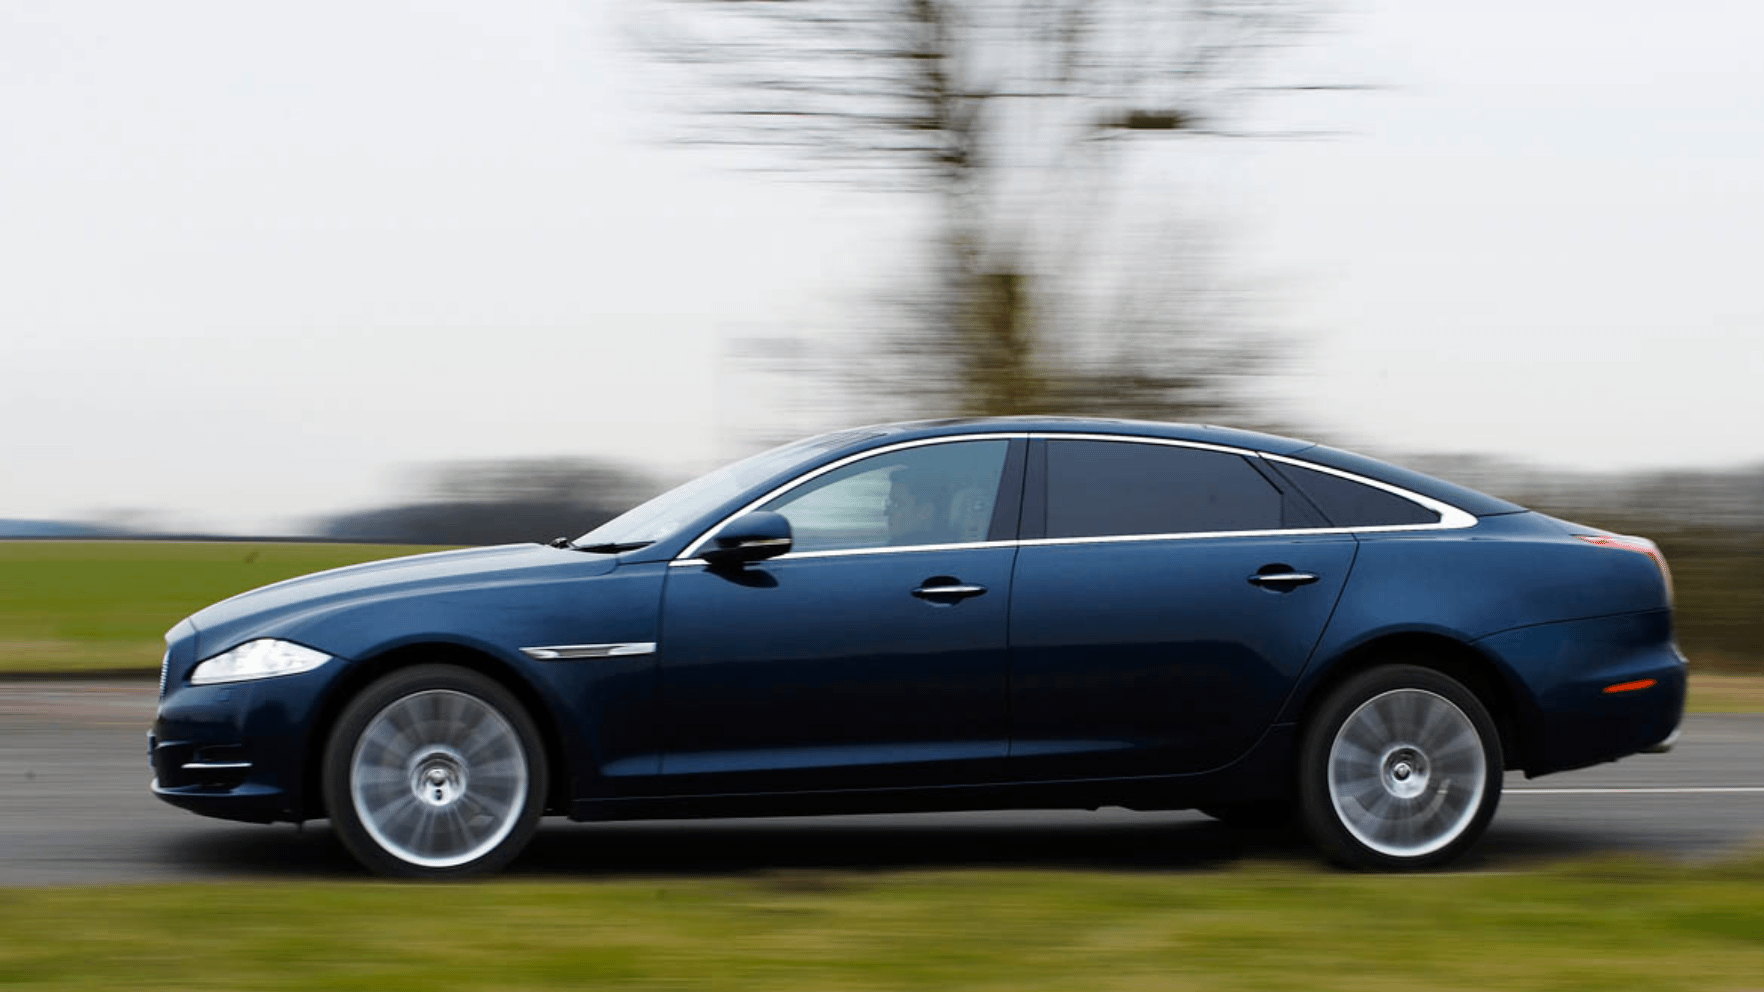 XJ Standard Wheelbase Luxury